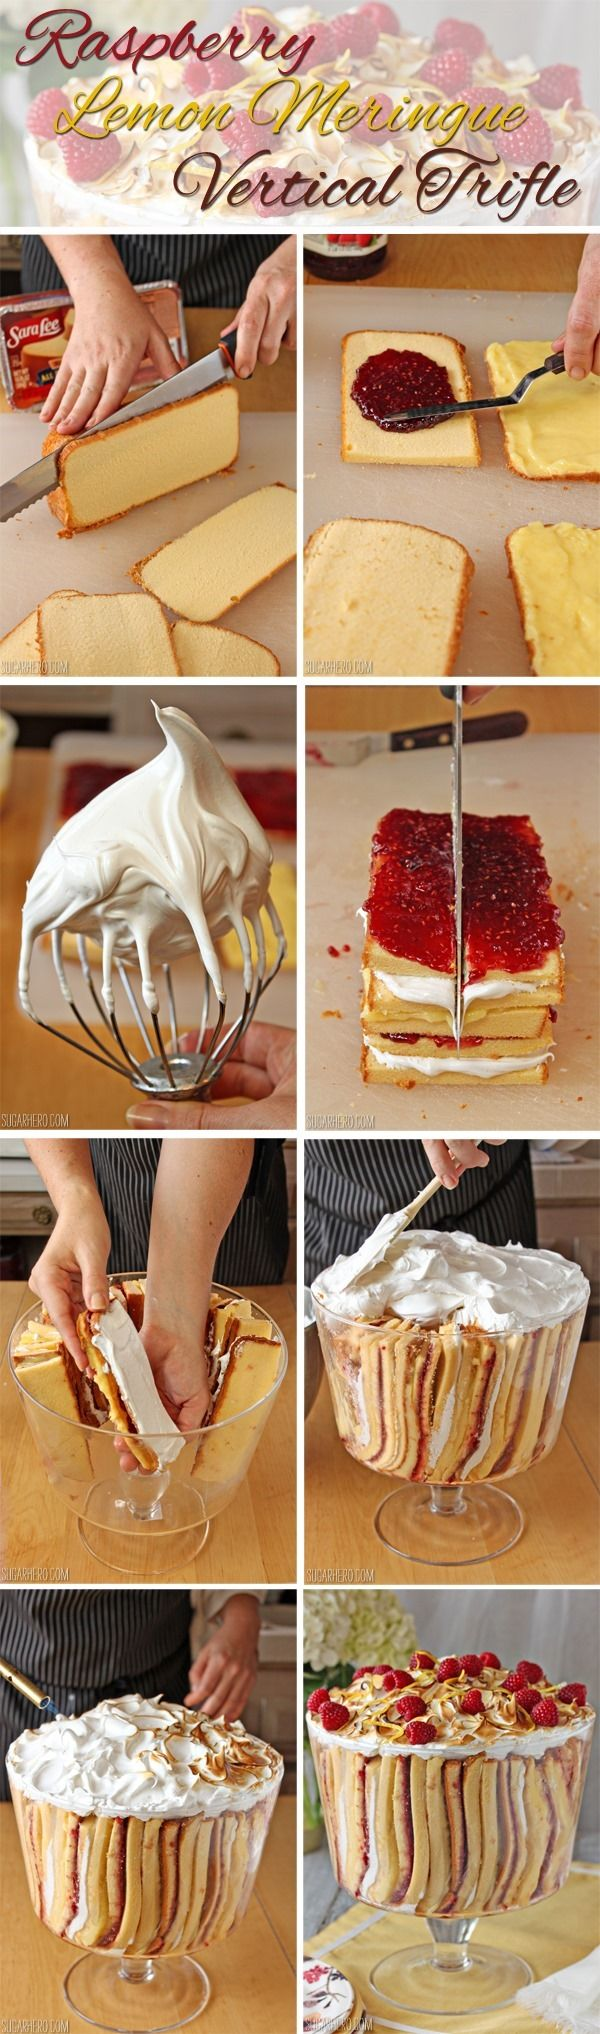 How to Make Raspberry Lemon Meringue Trifle | SugarHero.com